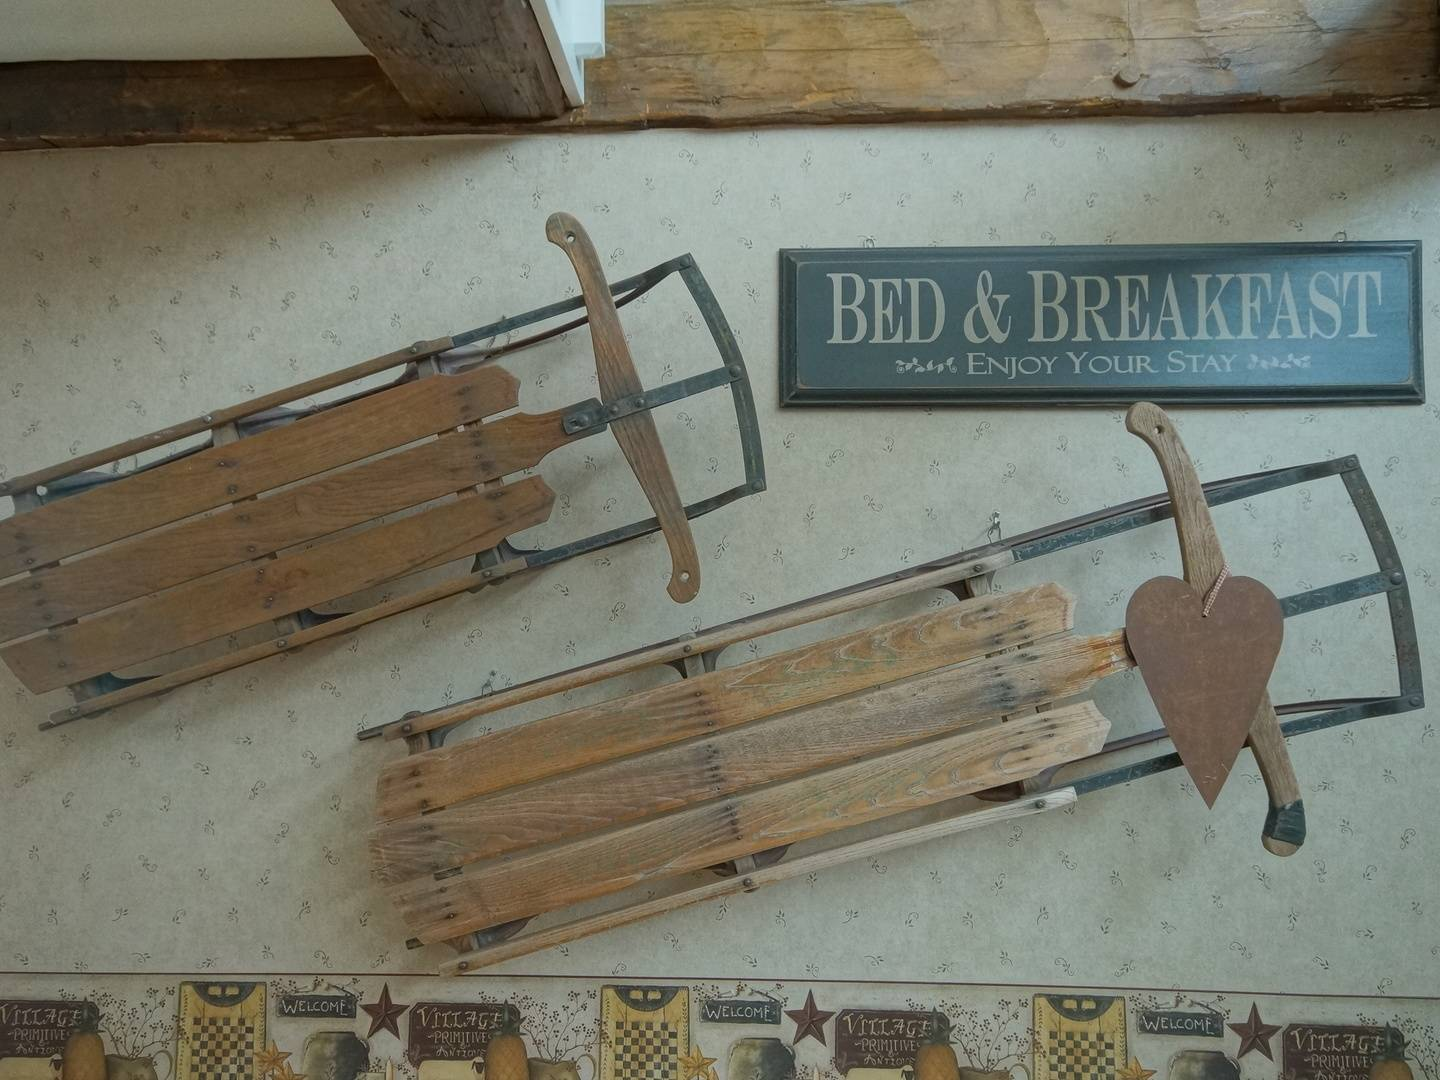 Bristol Bed and Breakfast